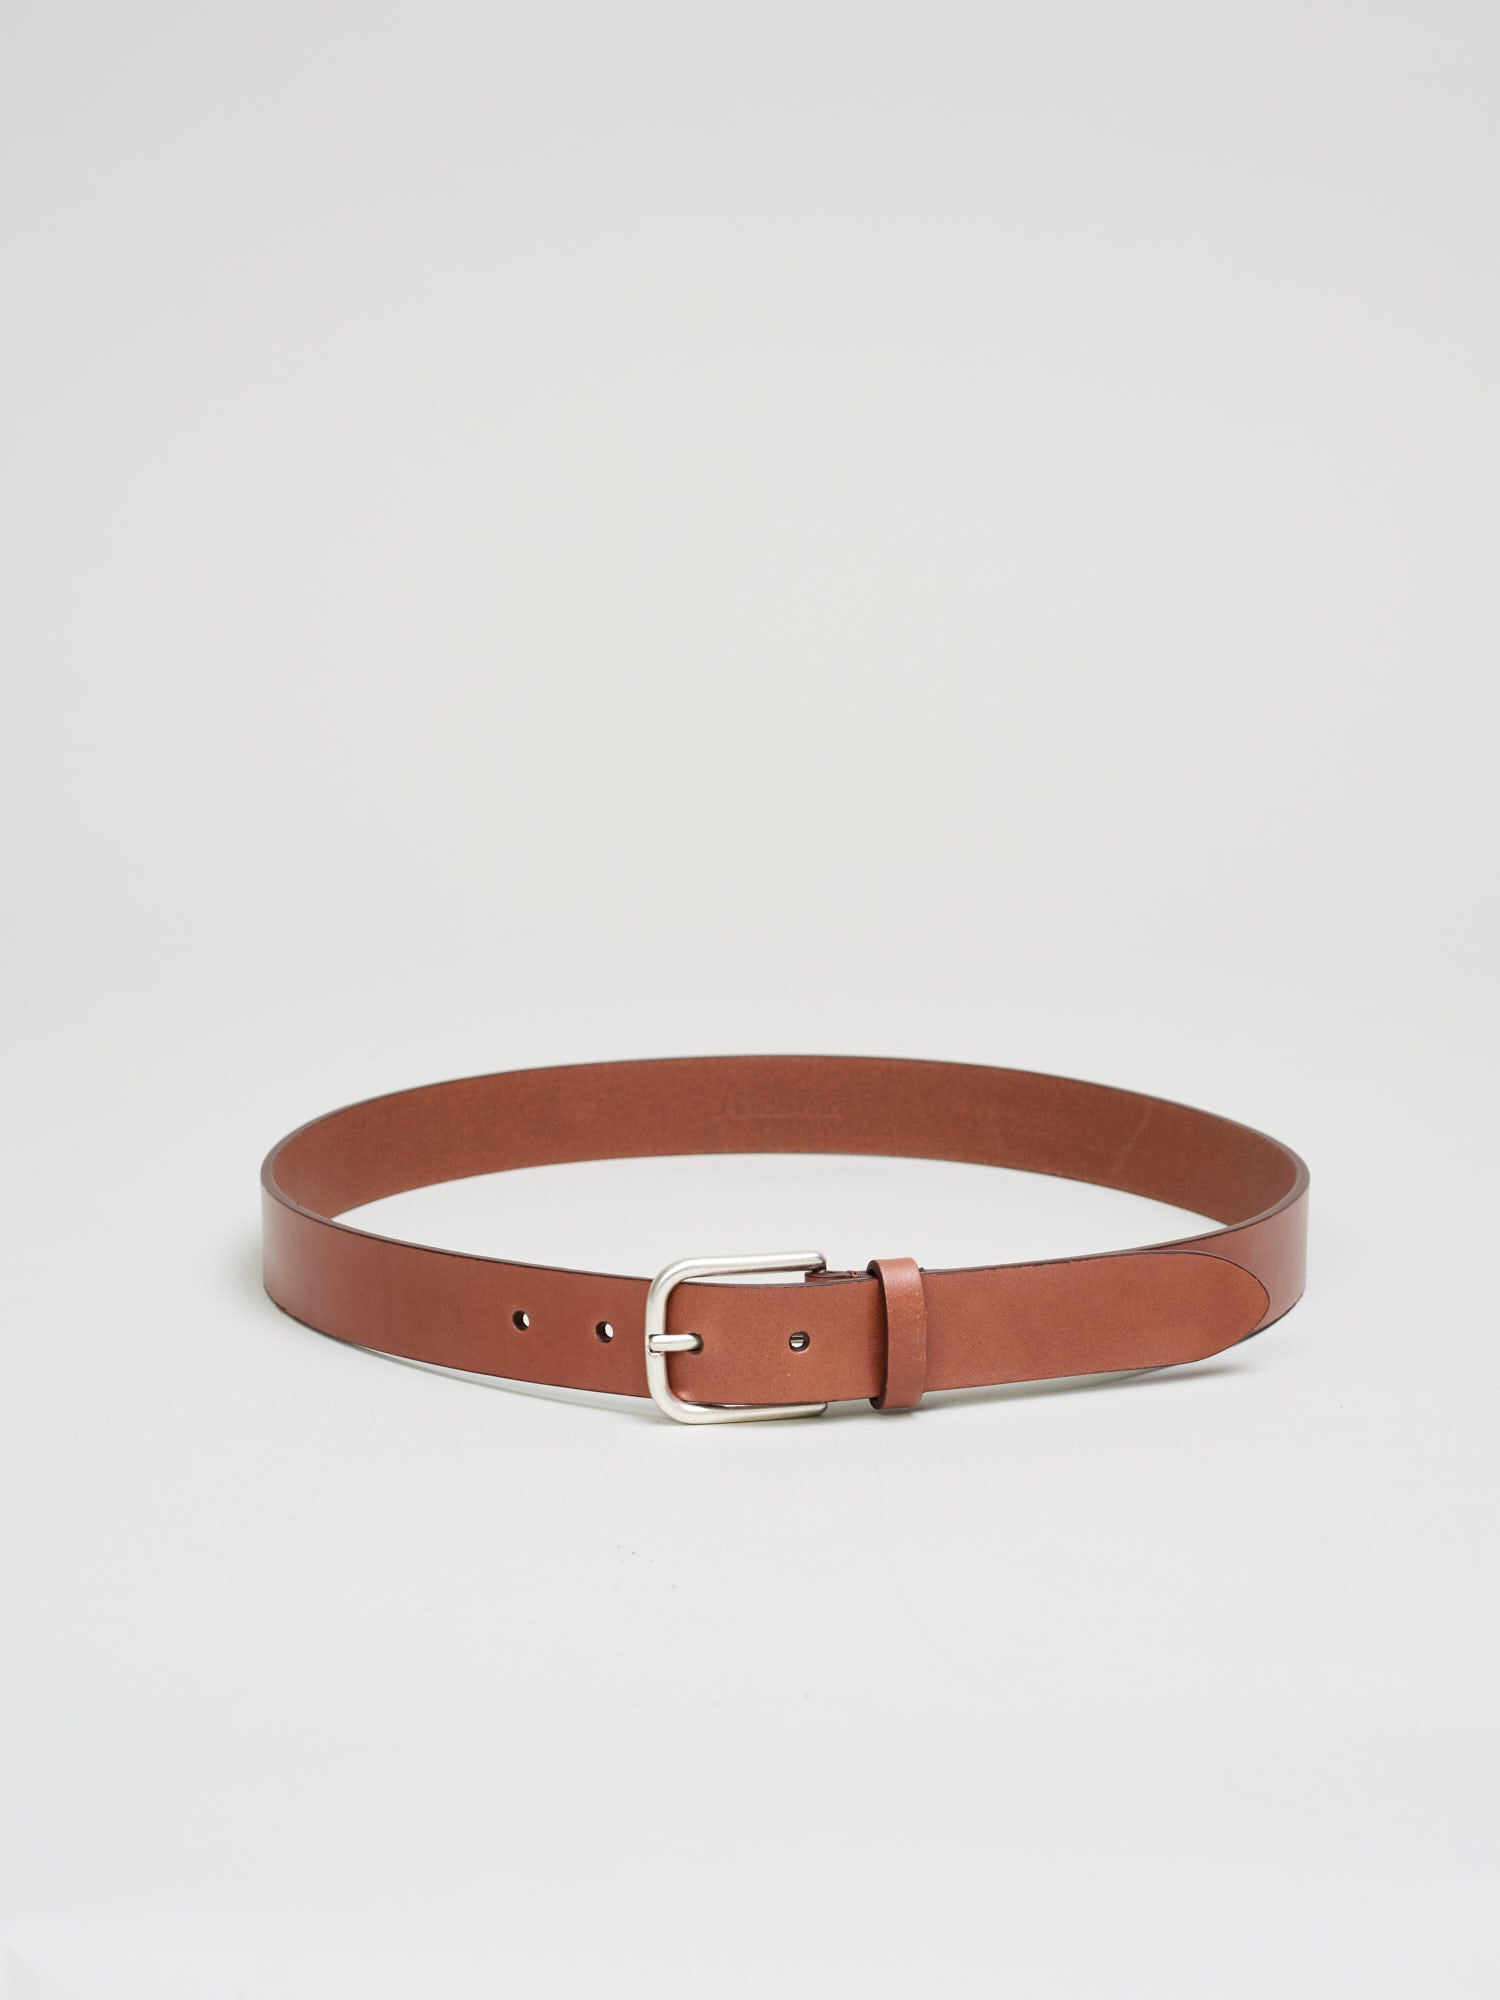 Leather Belt, Mid Brown - Goods